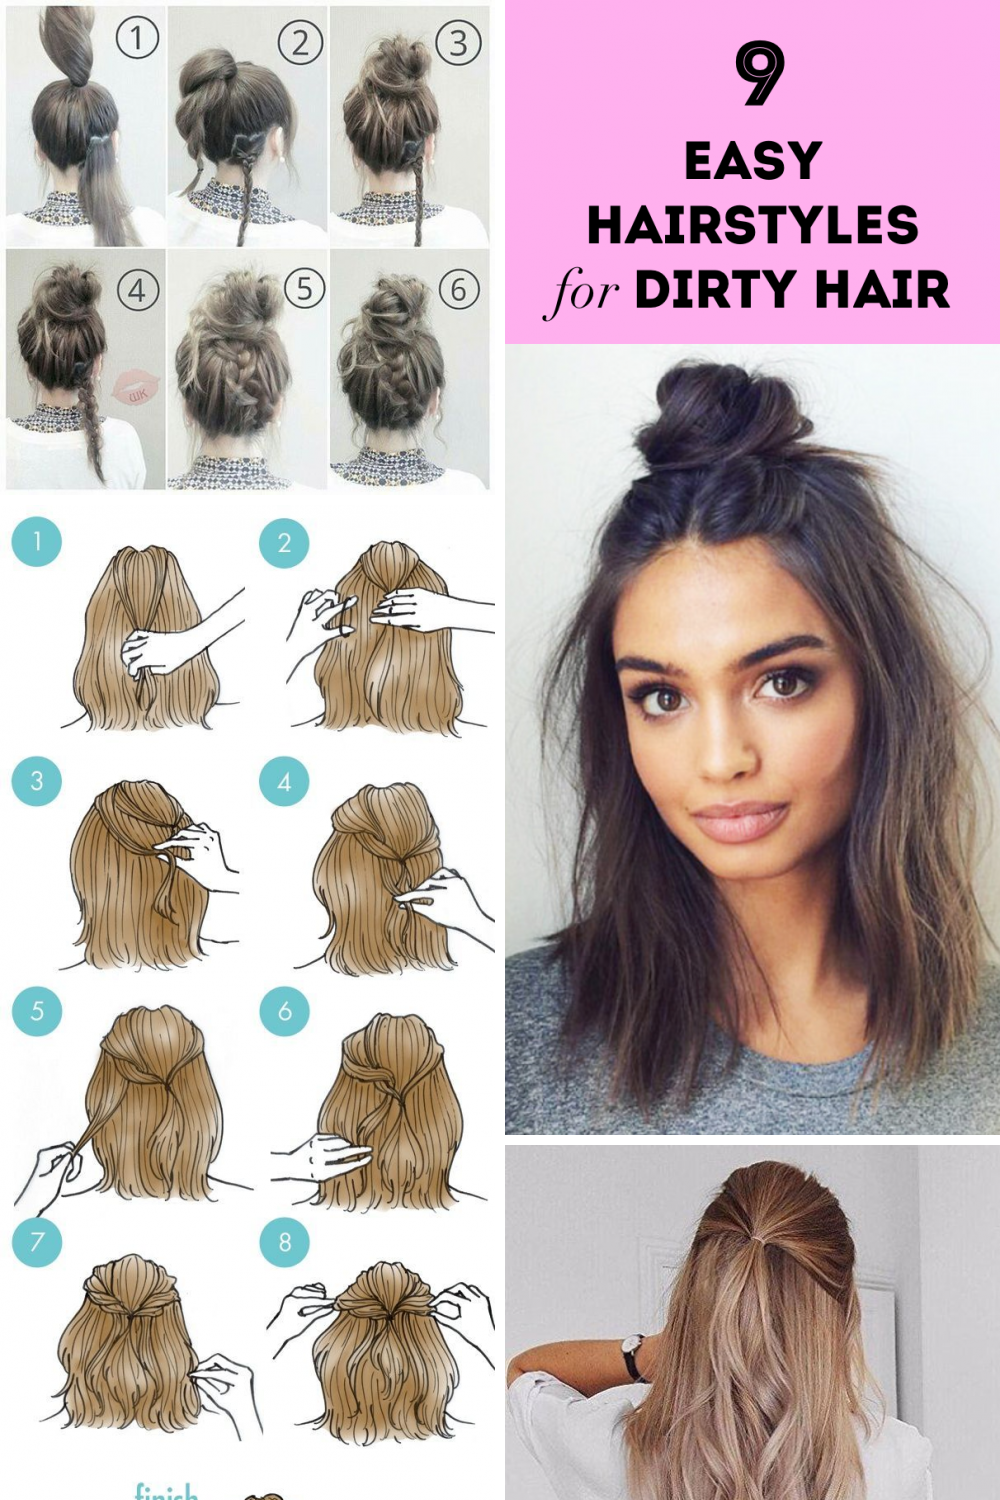 30 Lovely Easy Hairstyles For Medium Hair Simple And Easy Hair Tutorials For Medium Hair Hair Styles Easy Hairstyles